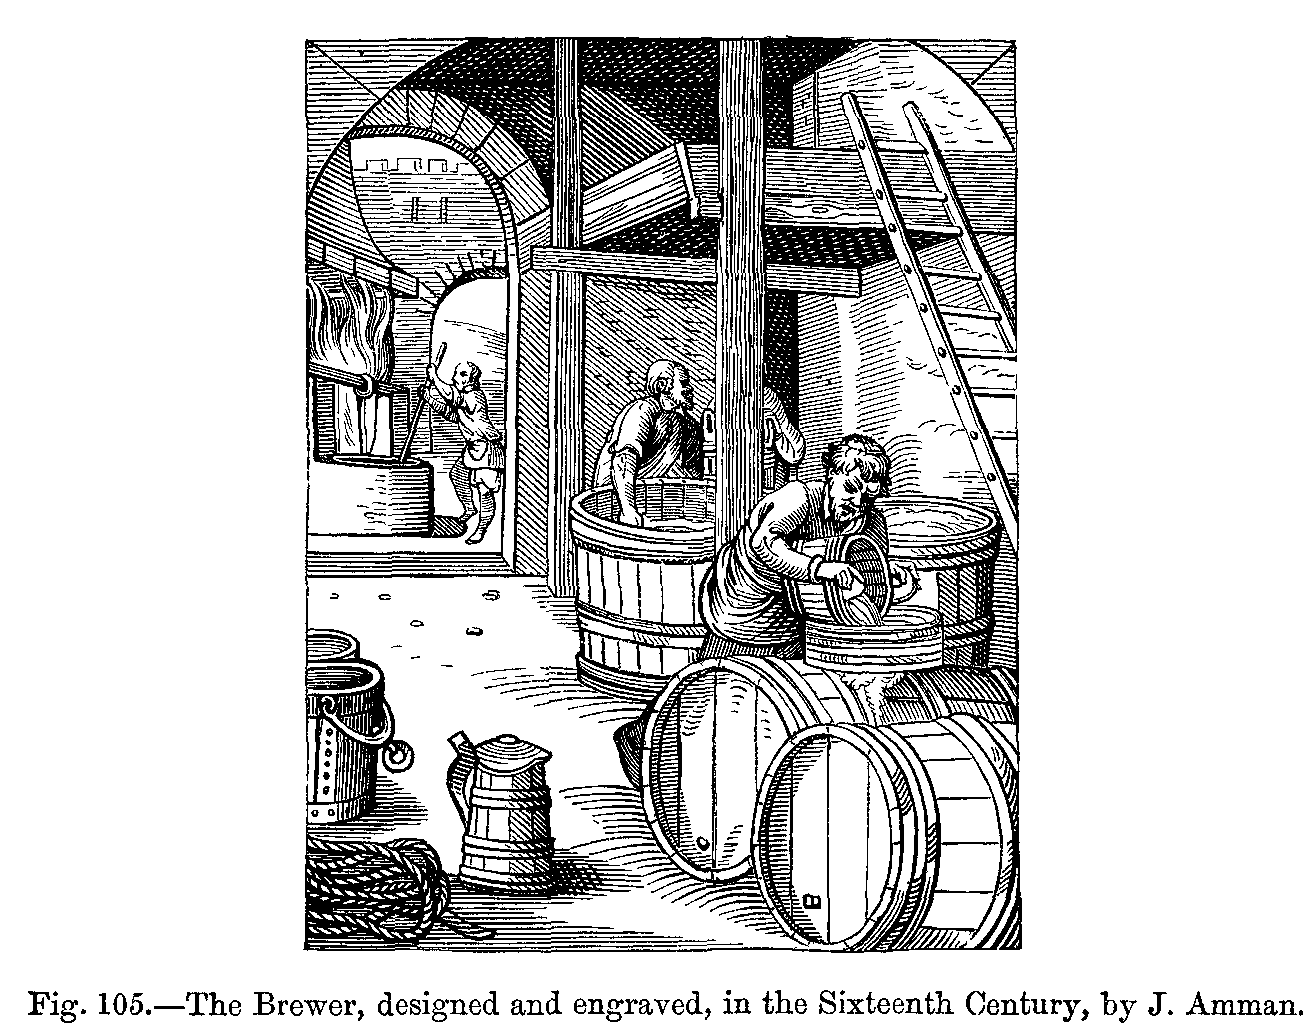 http://upload.wikimedia.org/wikipedia/commons/6/6b/Brewer_Book_of_Trades.png